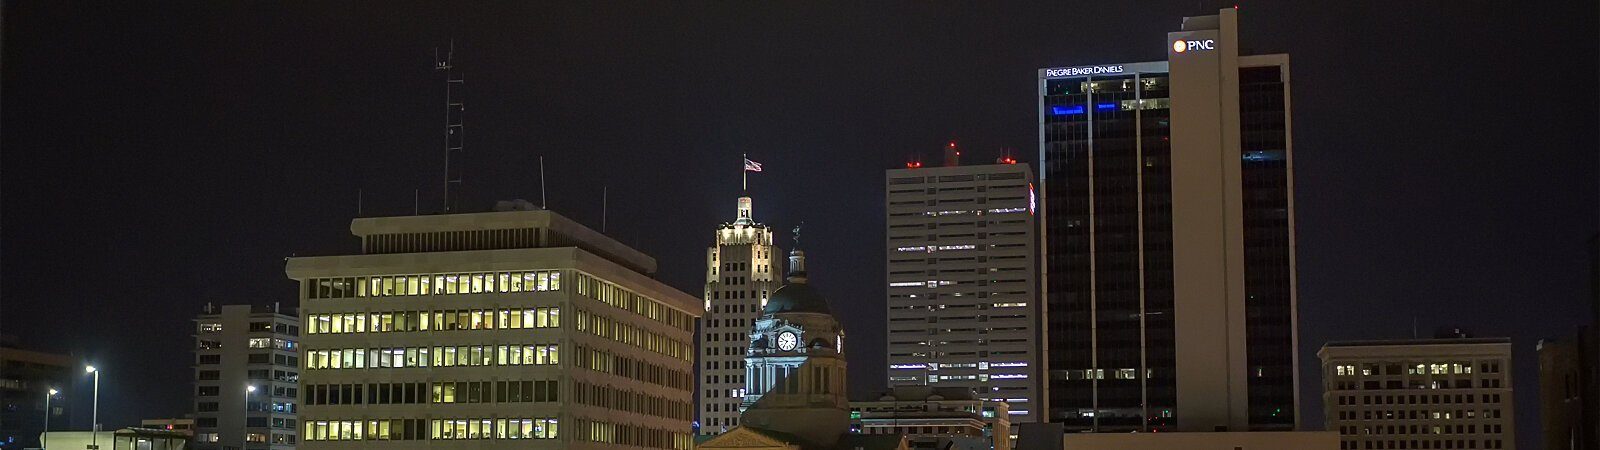 The downtown Fort Wayne skyline at night.